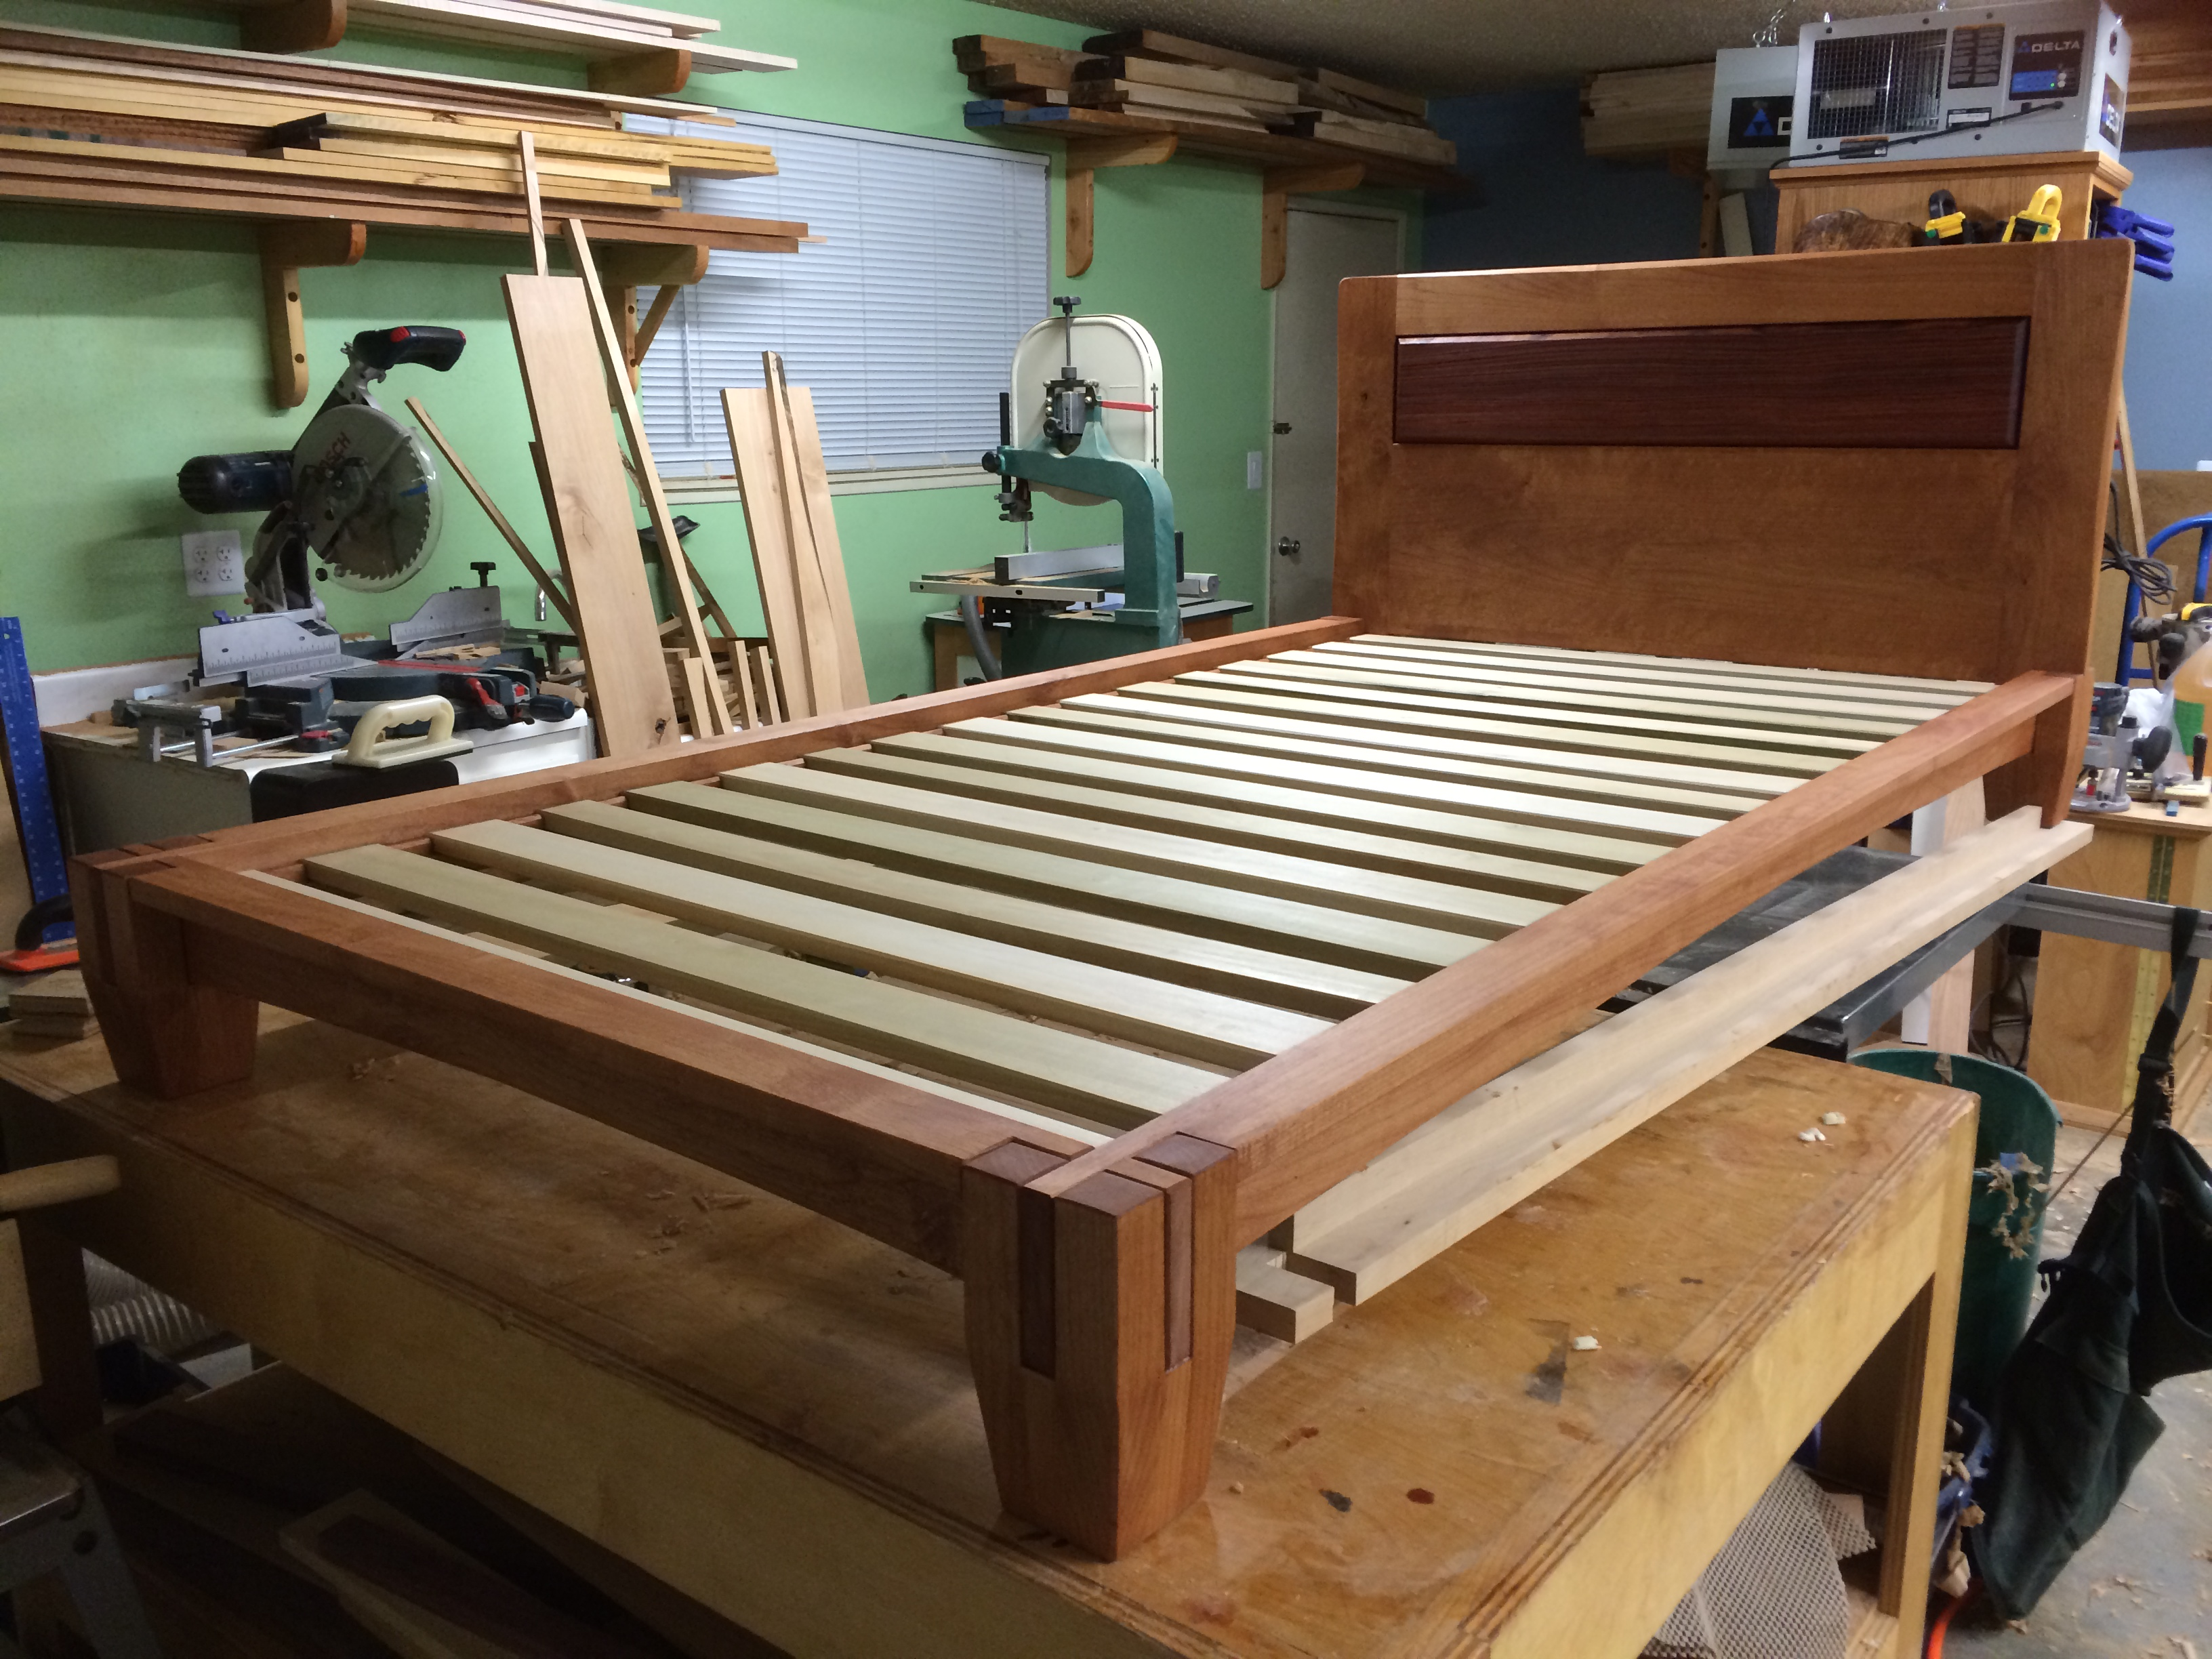 Plant Bed Diy Tatami Style Platform Bed With Downloadable Plans